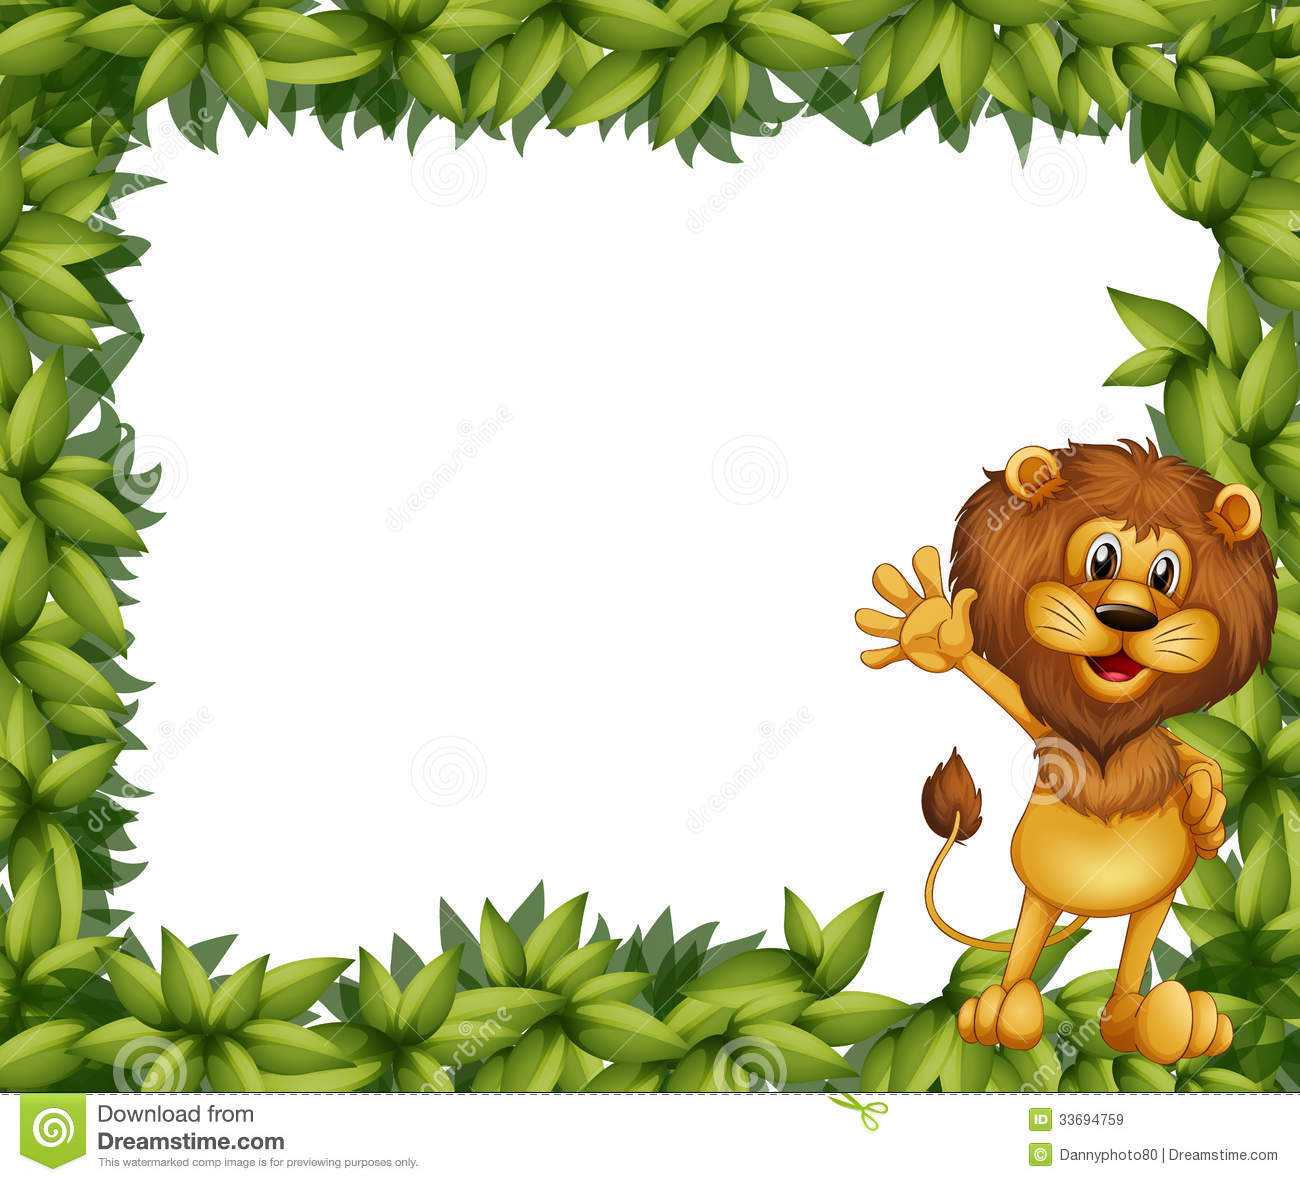 Green Leafy Border With A Lion Royalty Free Stock Images - Image ...